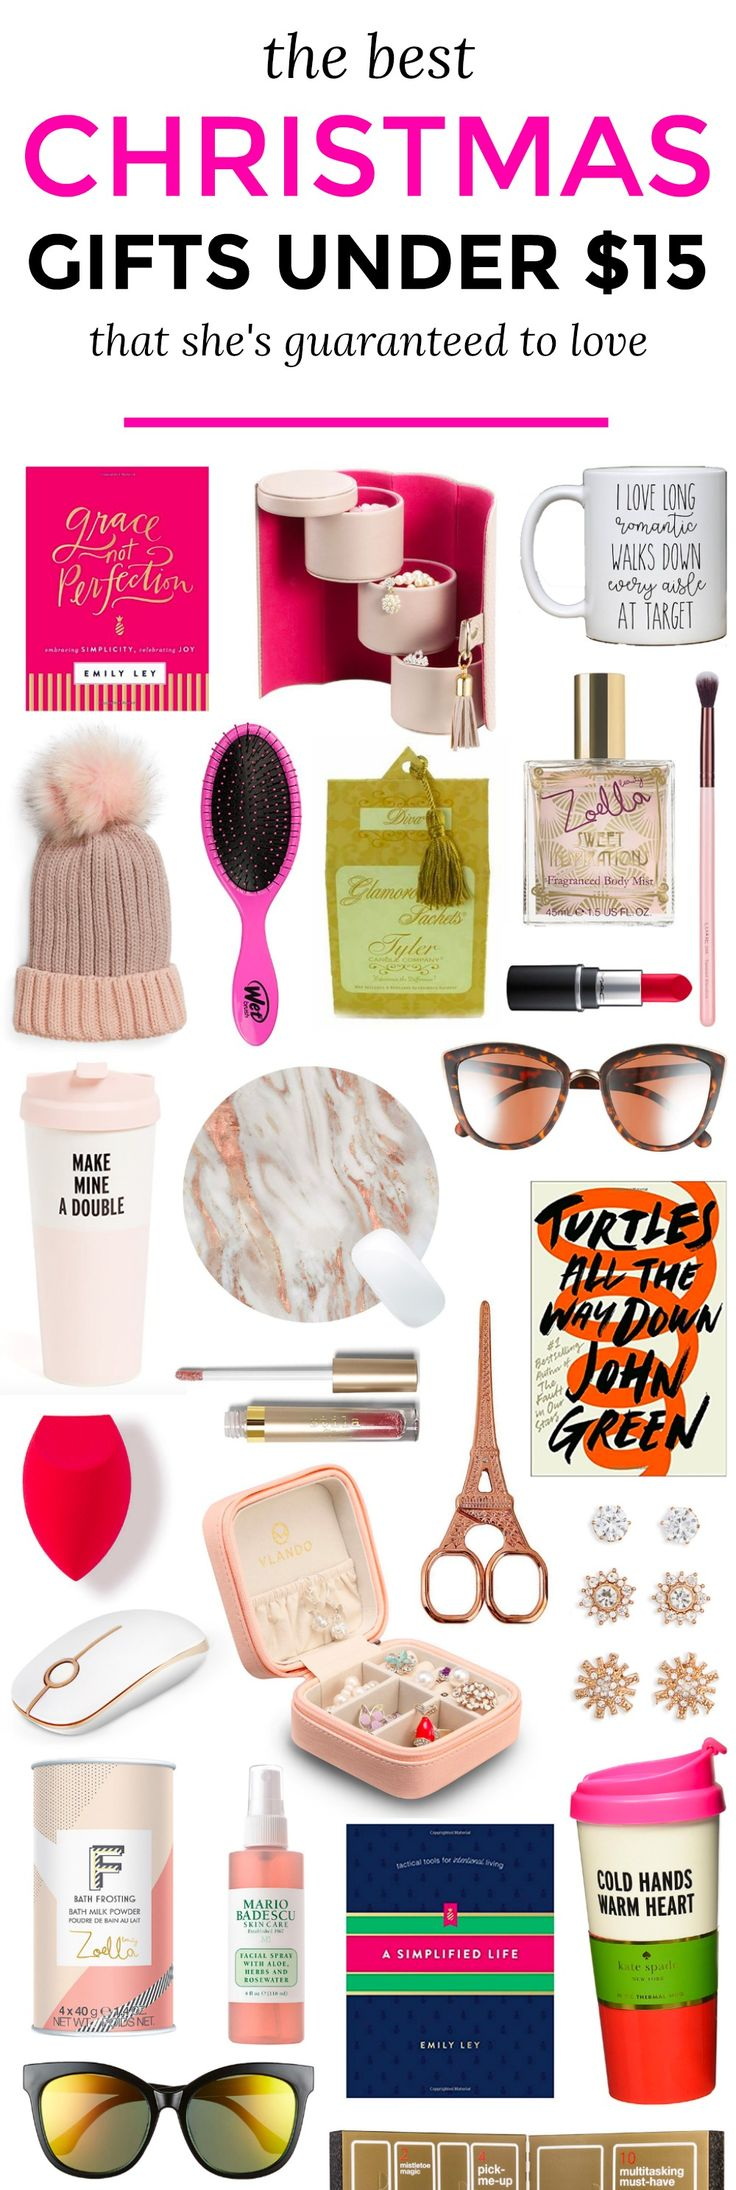 The best Christmas gift ideas for women under $15! The ultimate Christmas gift guide for women by Orlando, Florida beauty and fashion blogger Ashley Brooke Nicholas  | gifts under $15, gifts for women, holiday gift guide, best holiday gifts, best Christmas gifts, affordable gift ideas, gifts for women, gifts for teens, gifts for teen girls